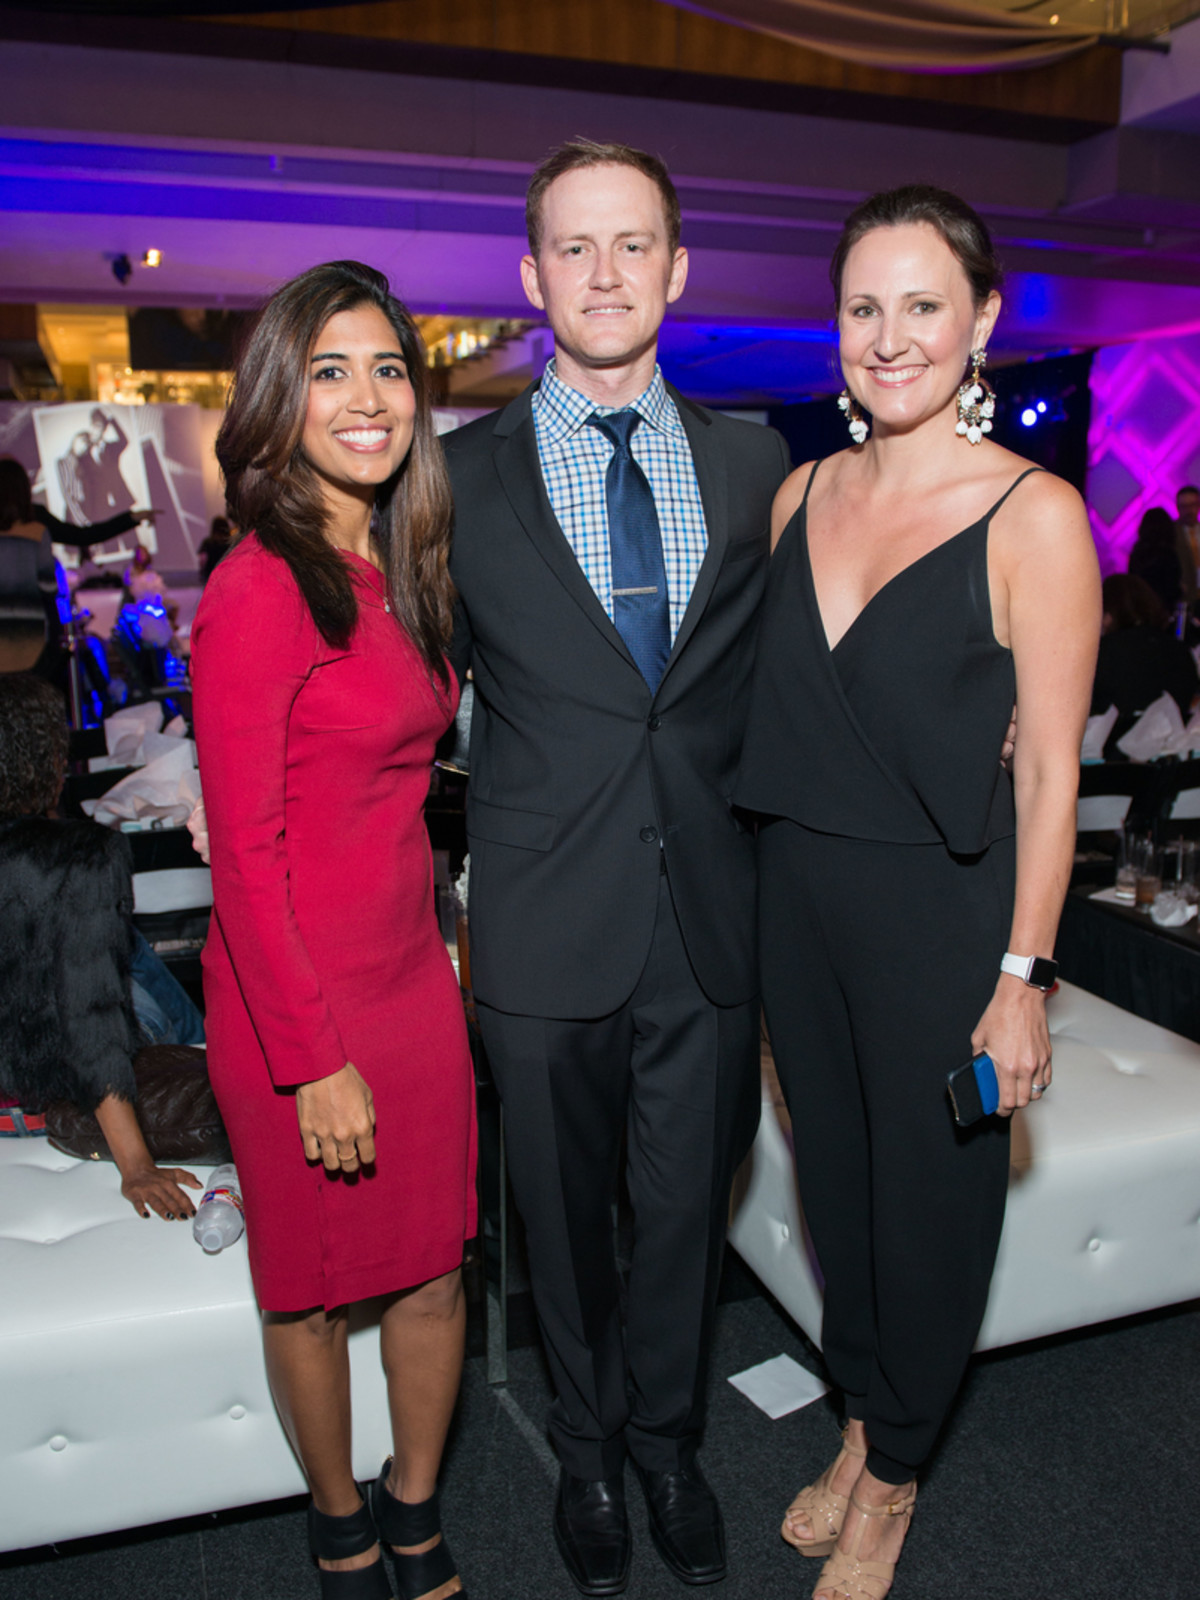 Houston, Vogue Simon Fashion Show, September 2015, Divya Brown, Cain Linville, Kate Stukenberg